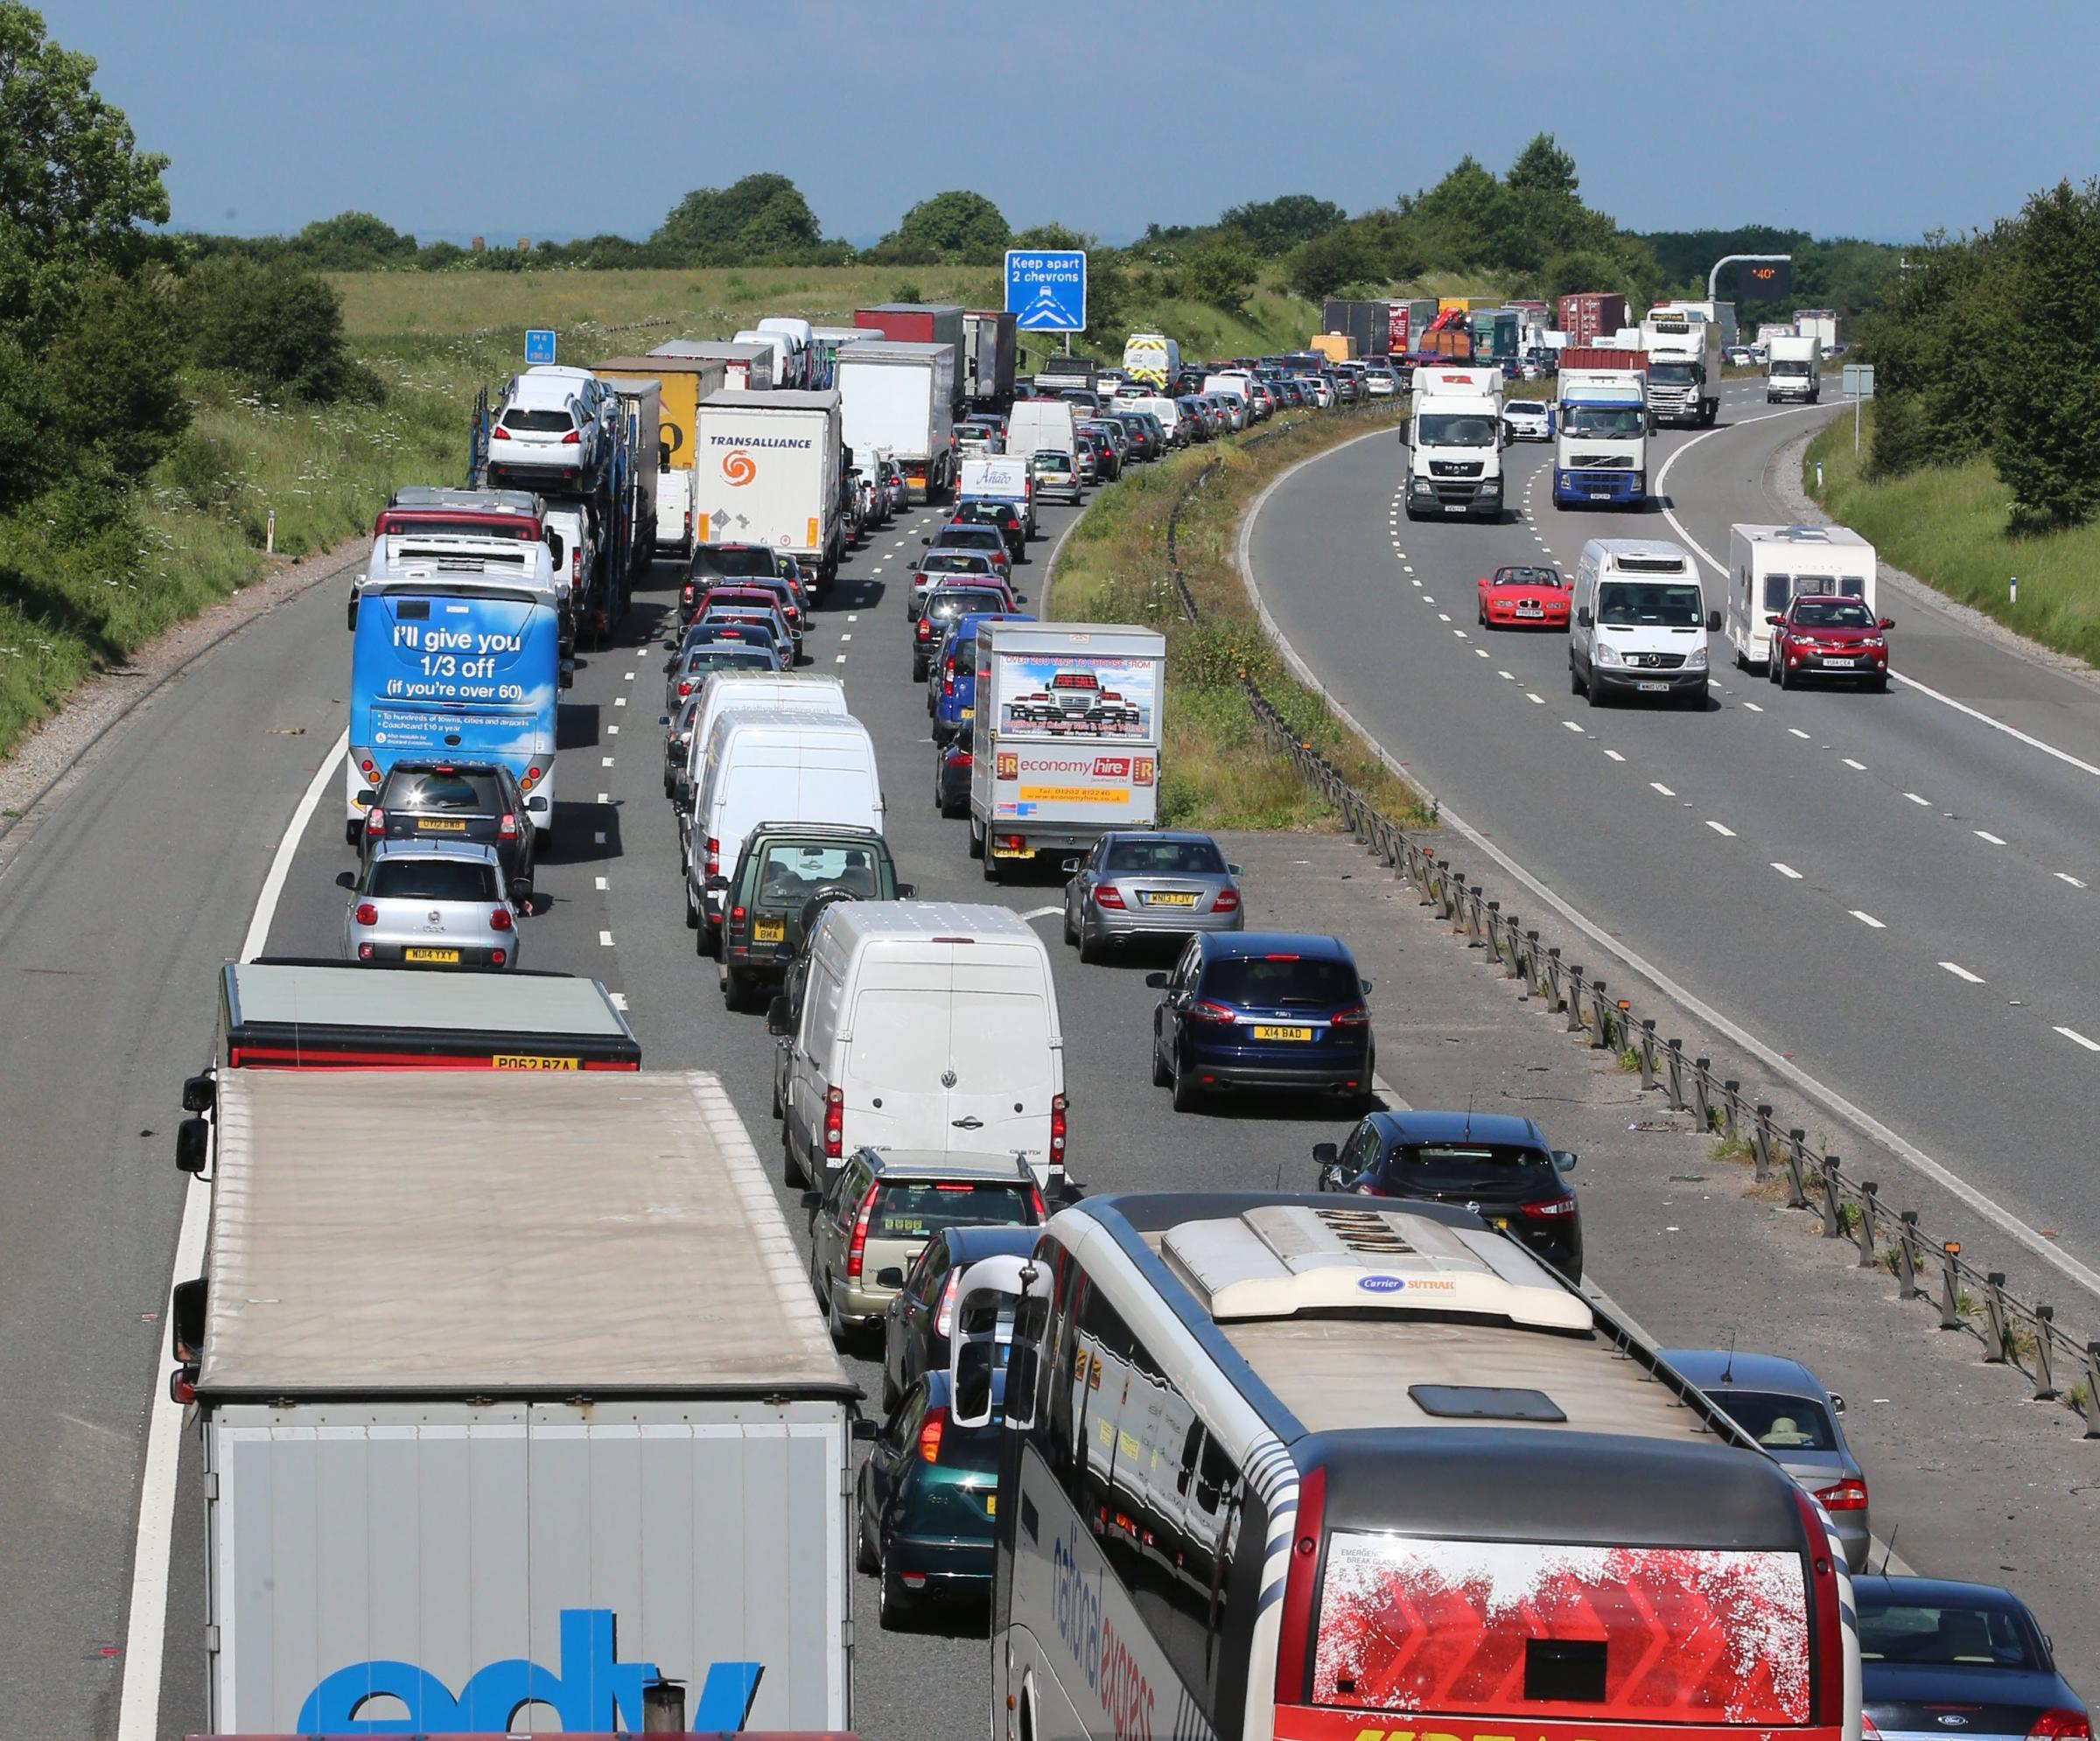 Easter bank holiday getaway - when to travel and which motorways to avoid